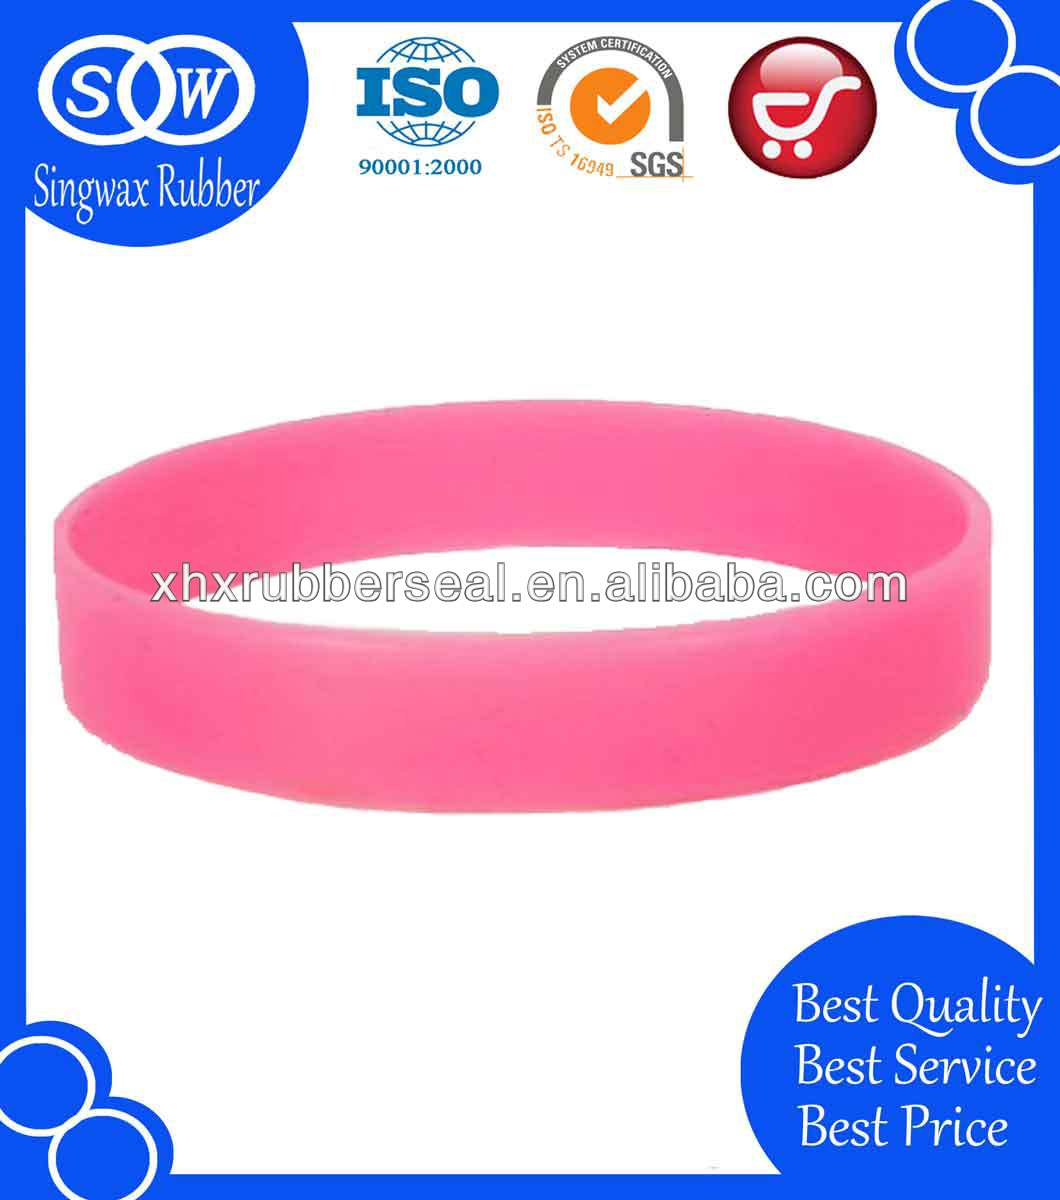 Singwax BRAND Healthy Silicone Bands